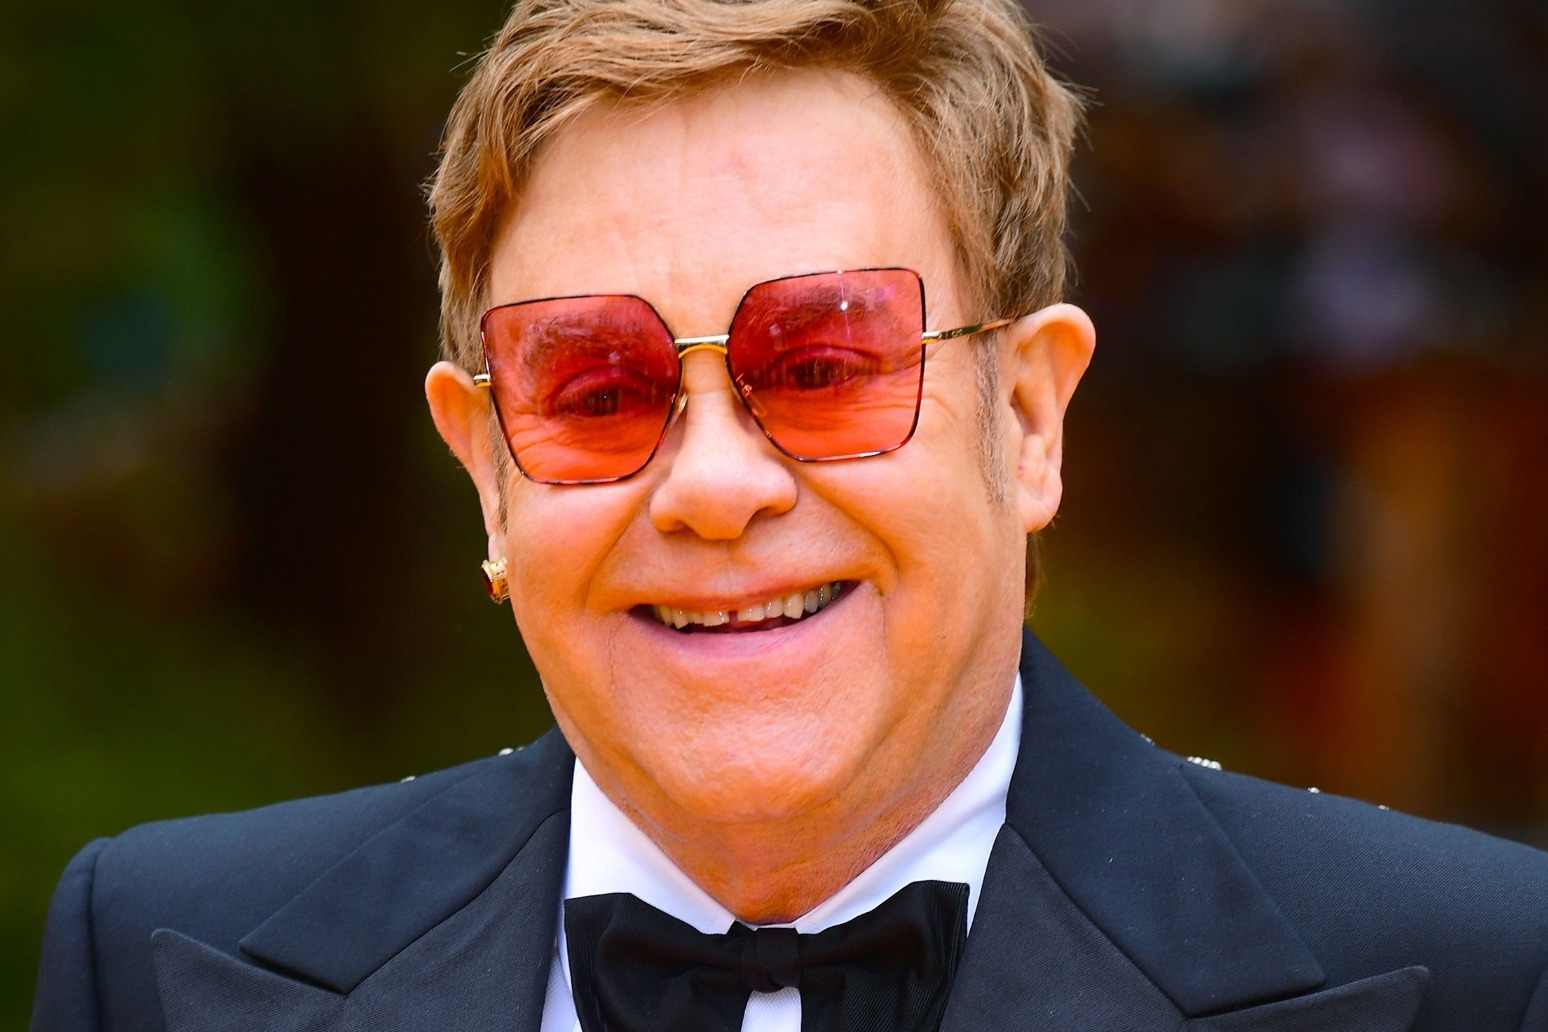 Sir Elton John urges support for independent record shops amid Covid-19 outbreak